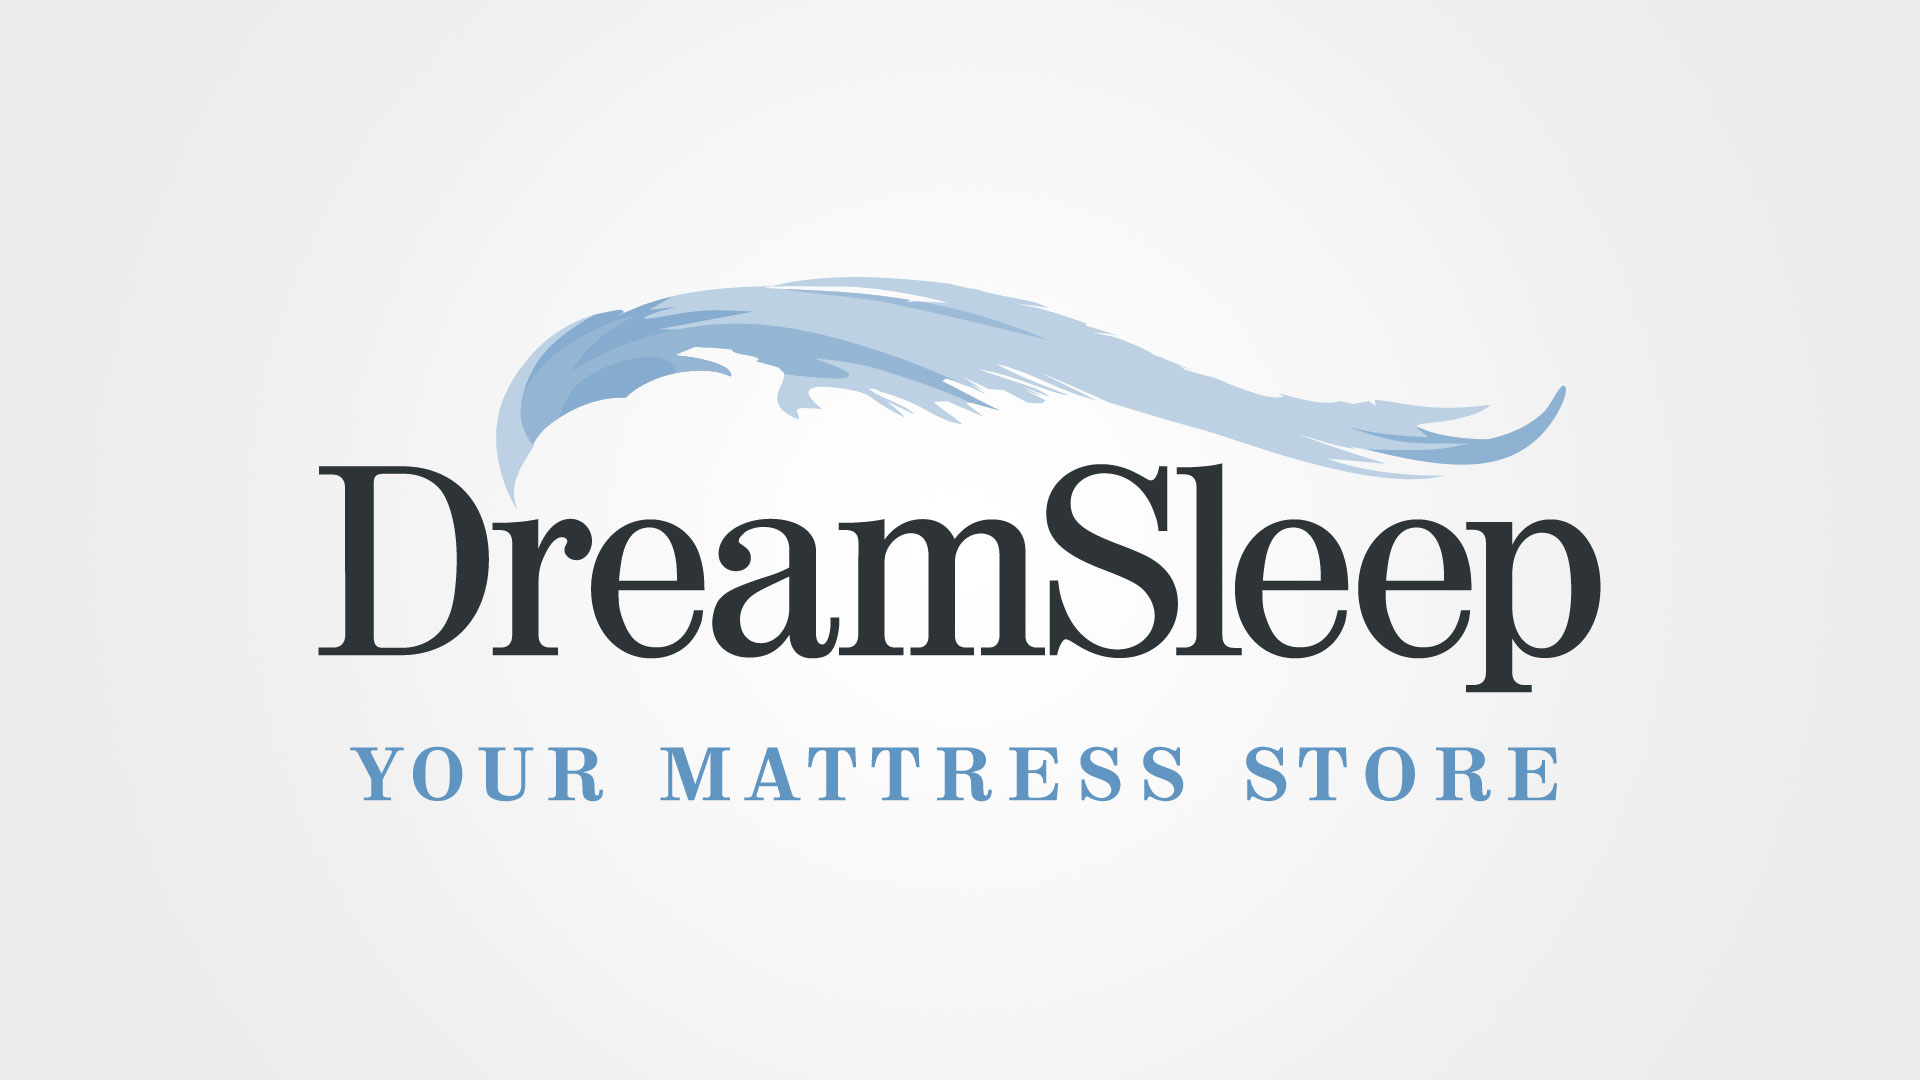 DreamSleep Retail Branding